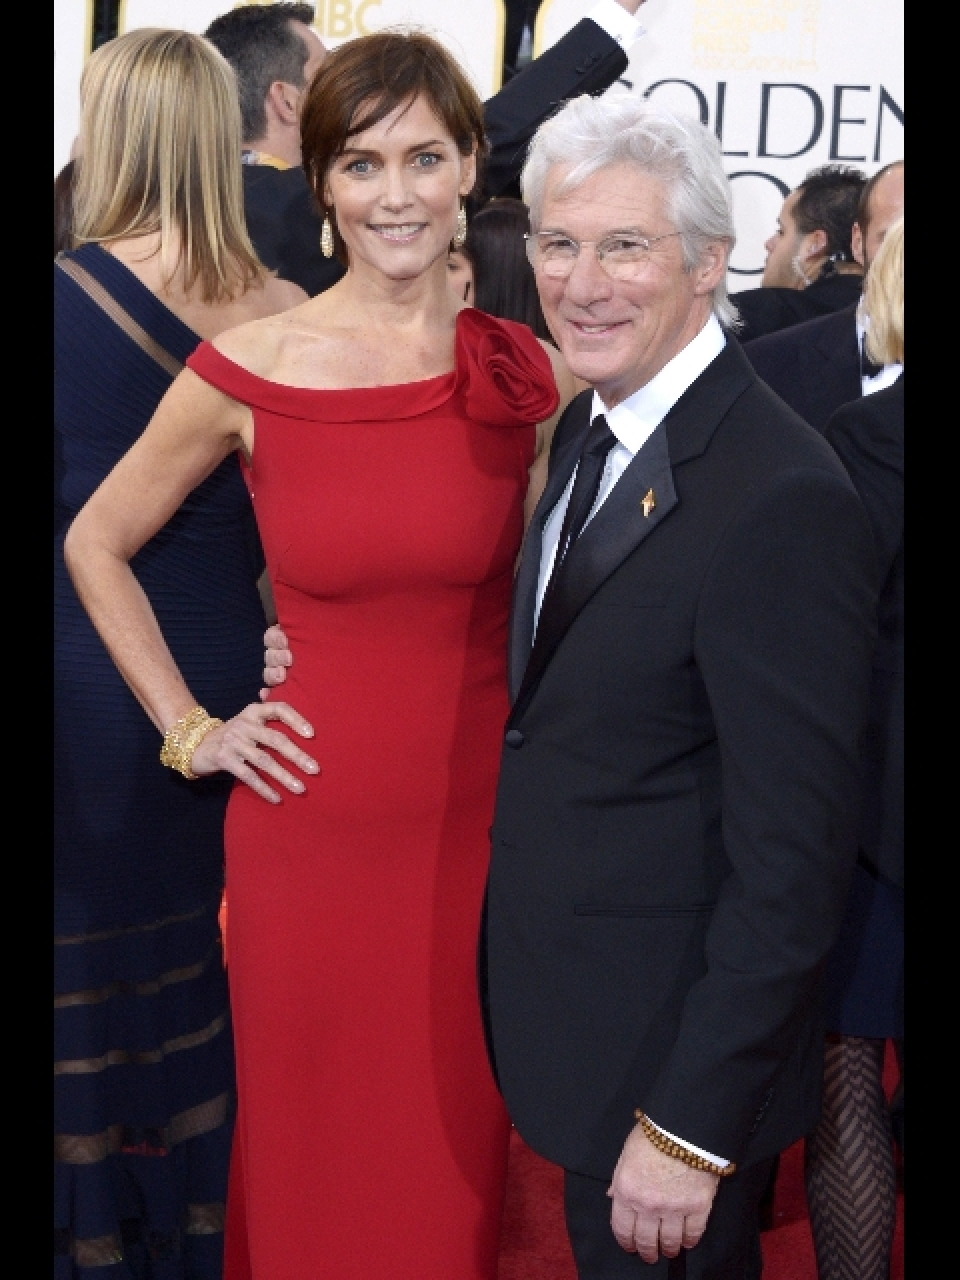 Richard Gere con la moglie al 70/mo Golden Globe Awards ...Richard Gere 2013 Wife